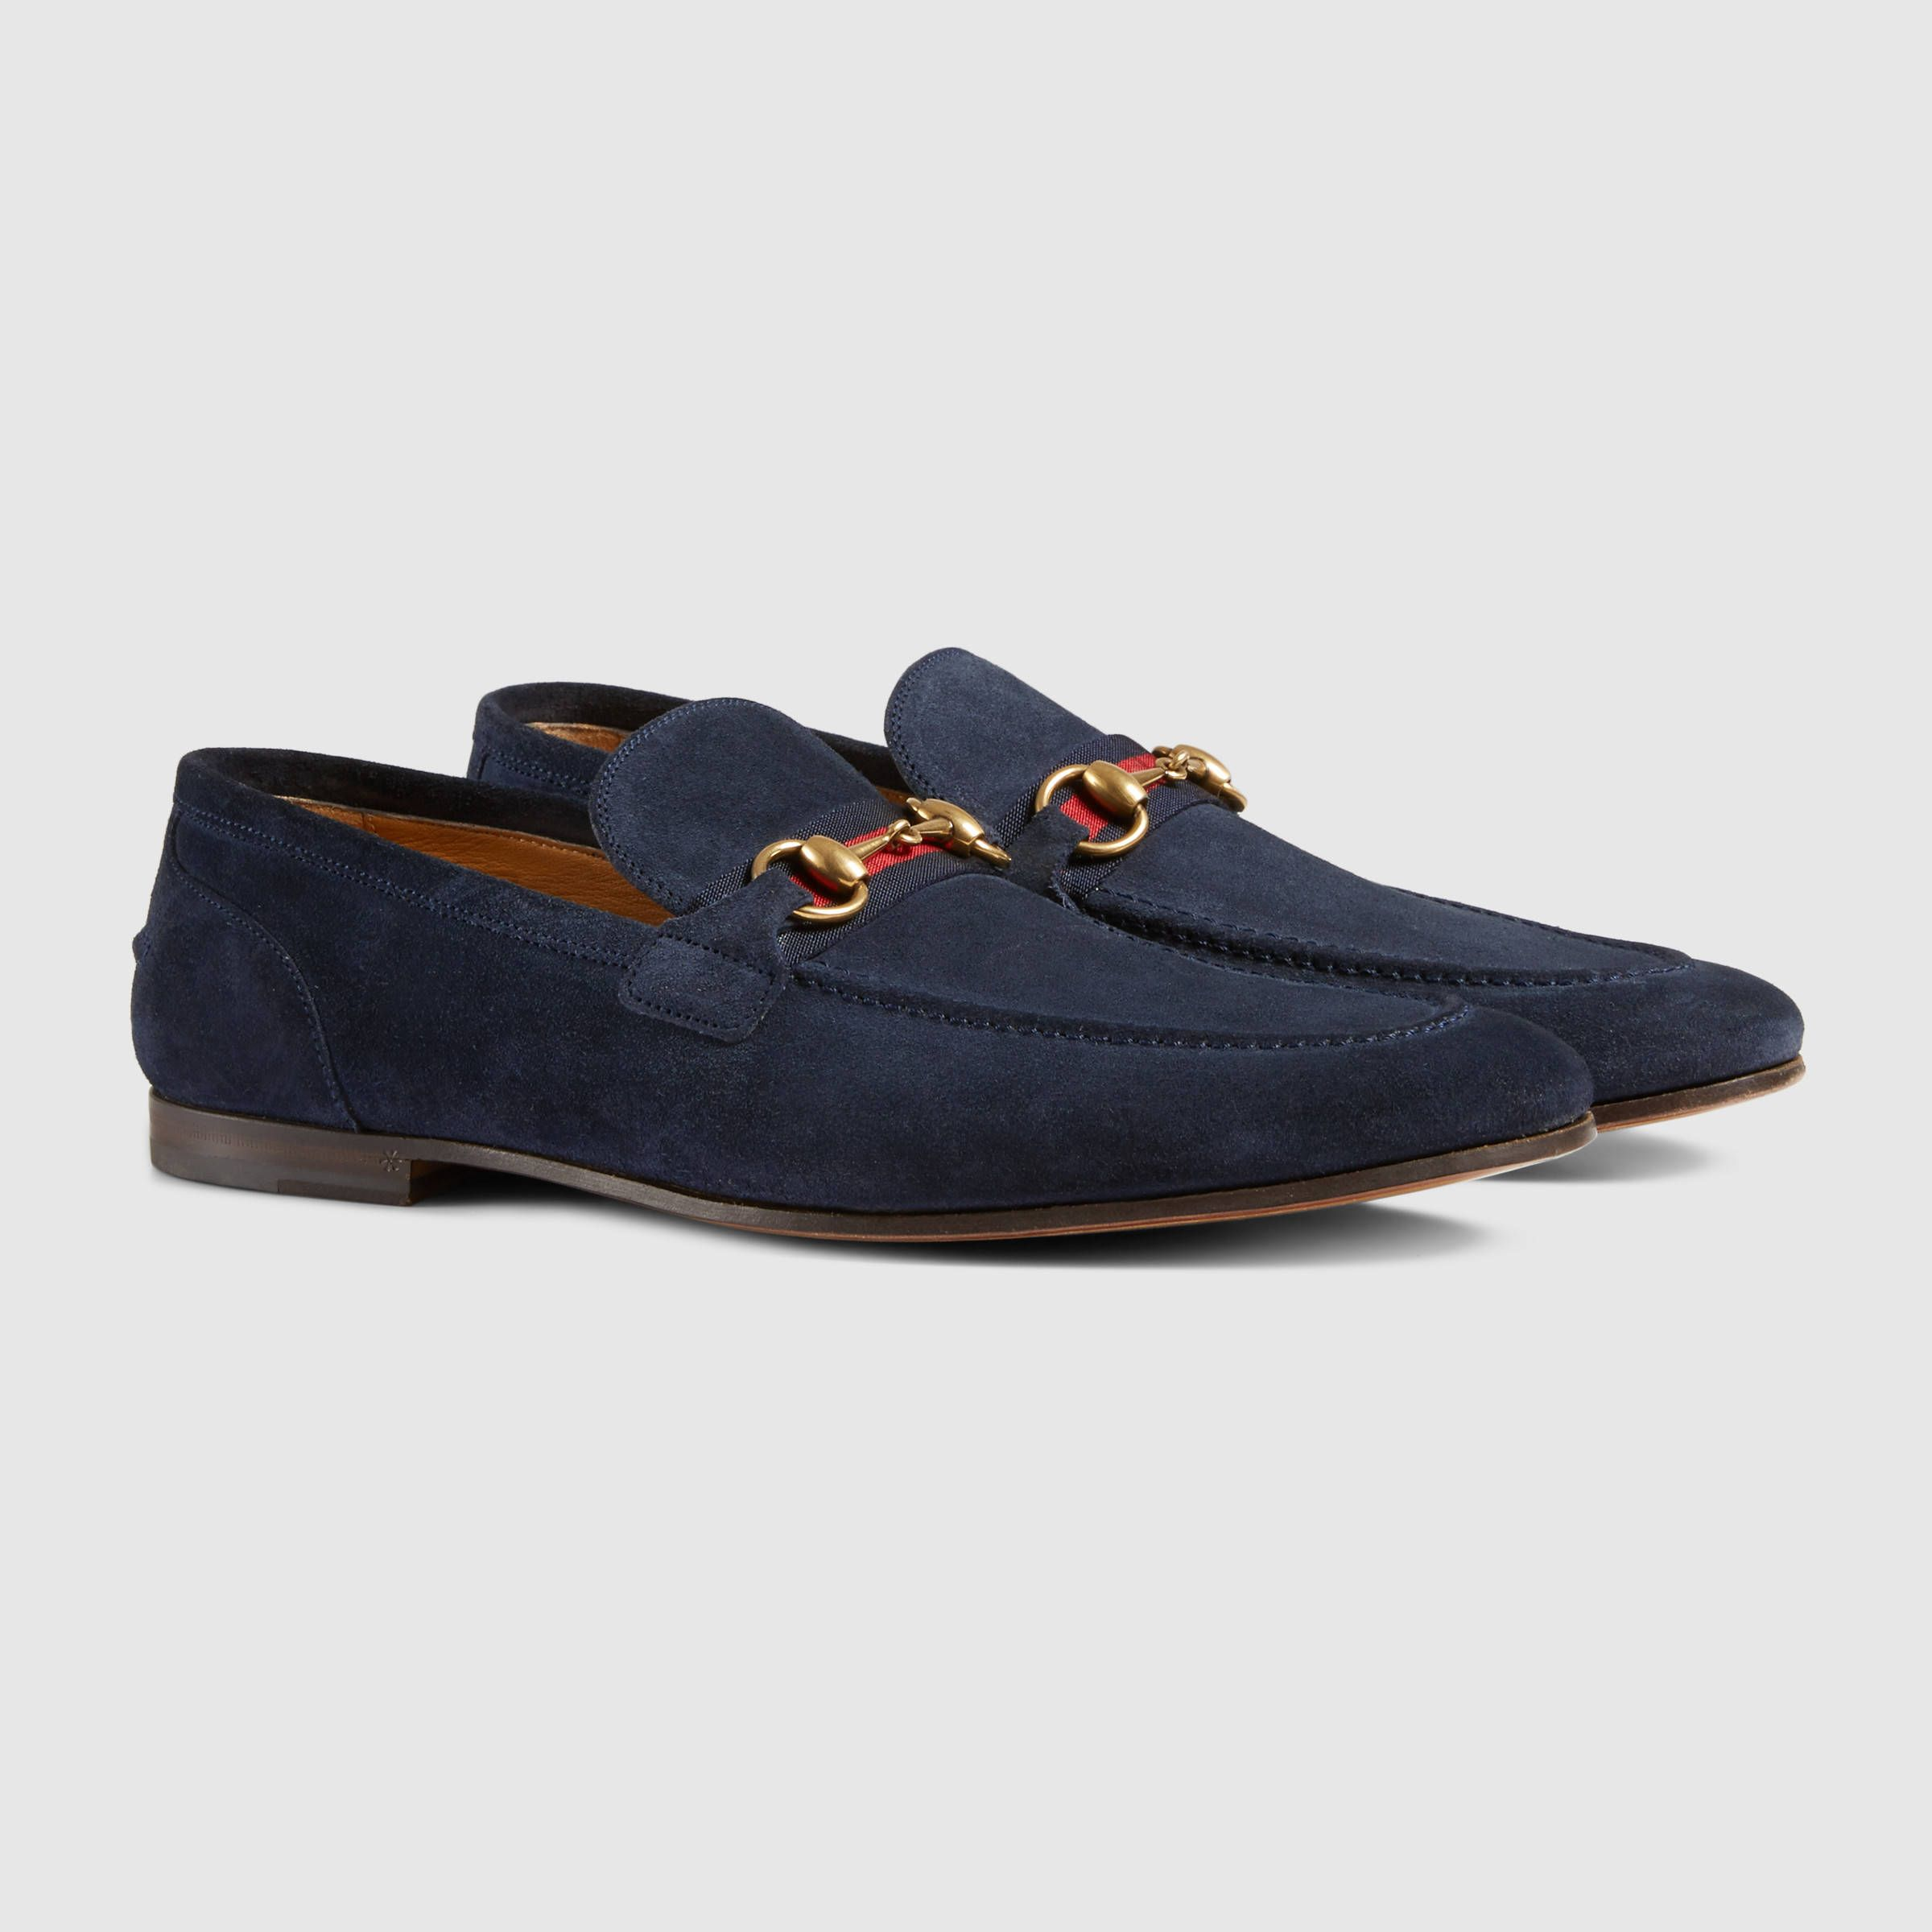 8d3693c2258 Shop the Horsebit suede loafer with Web by Gucci. Suede loafer designed  with an elongated toe